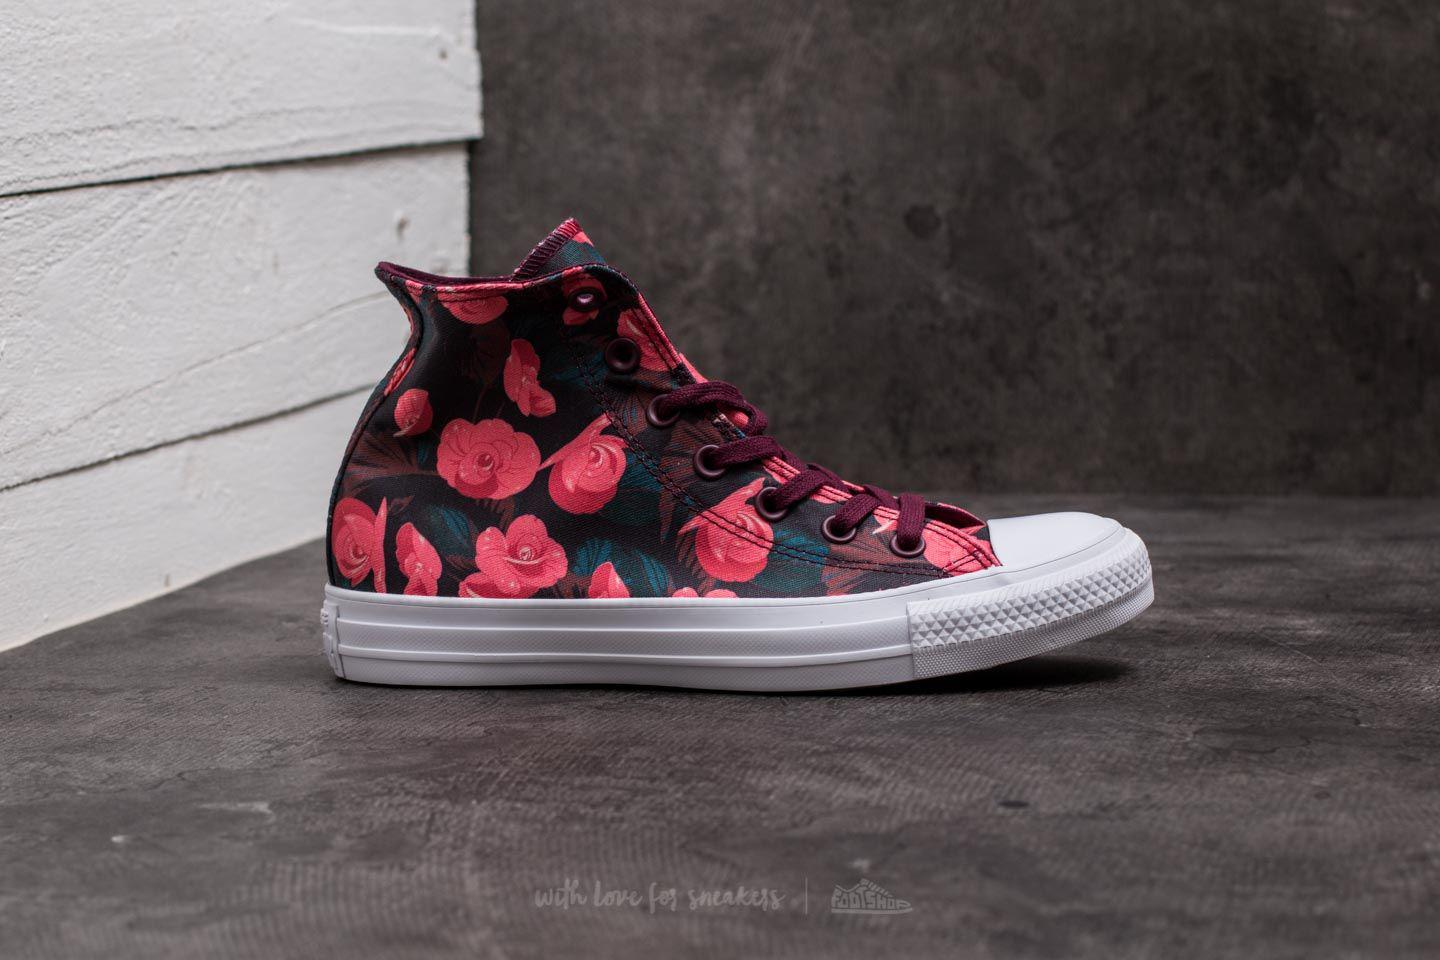 be8e537d94ee97 Lyst - Converse Chuck Taylor All Star Hi Dark Sangria  Pink  White